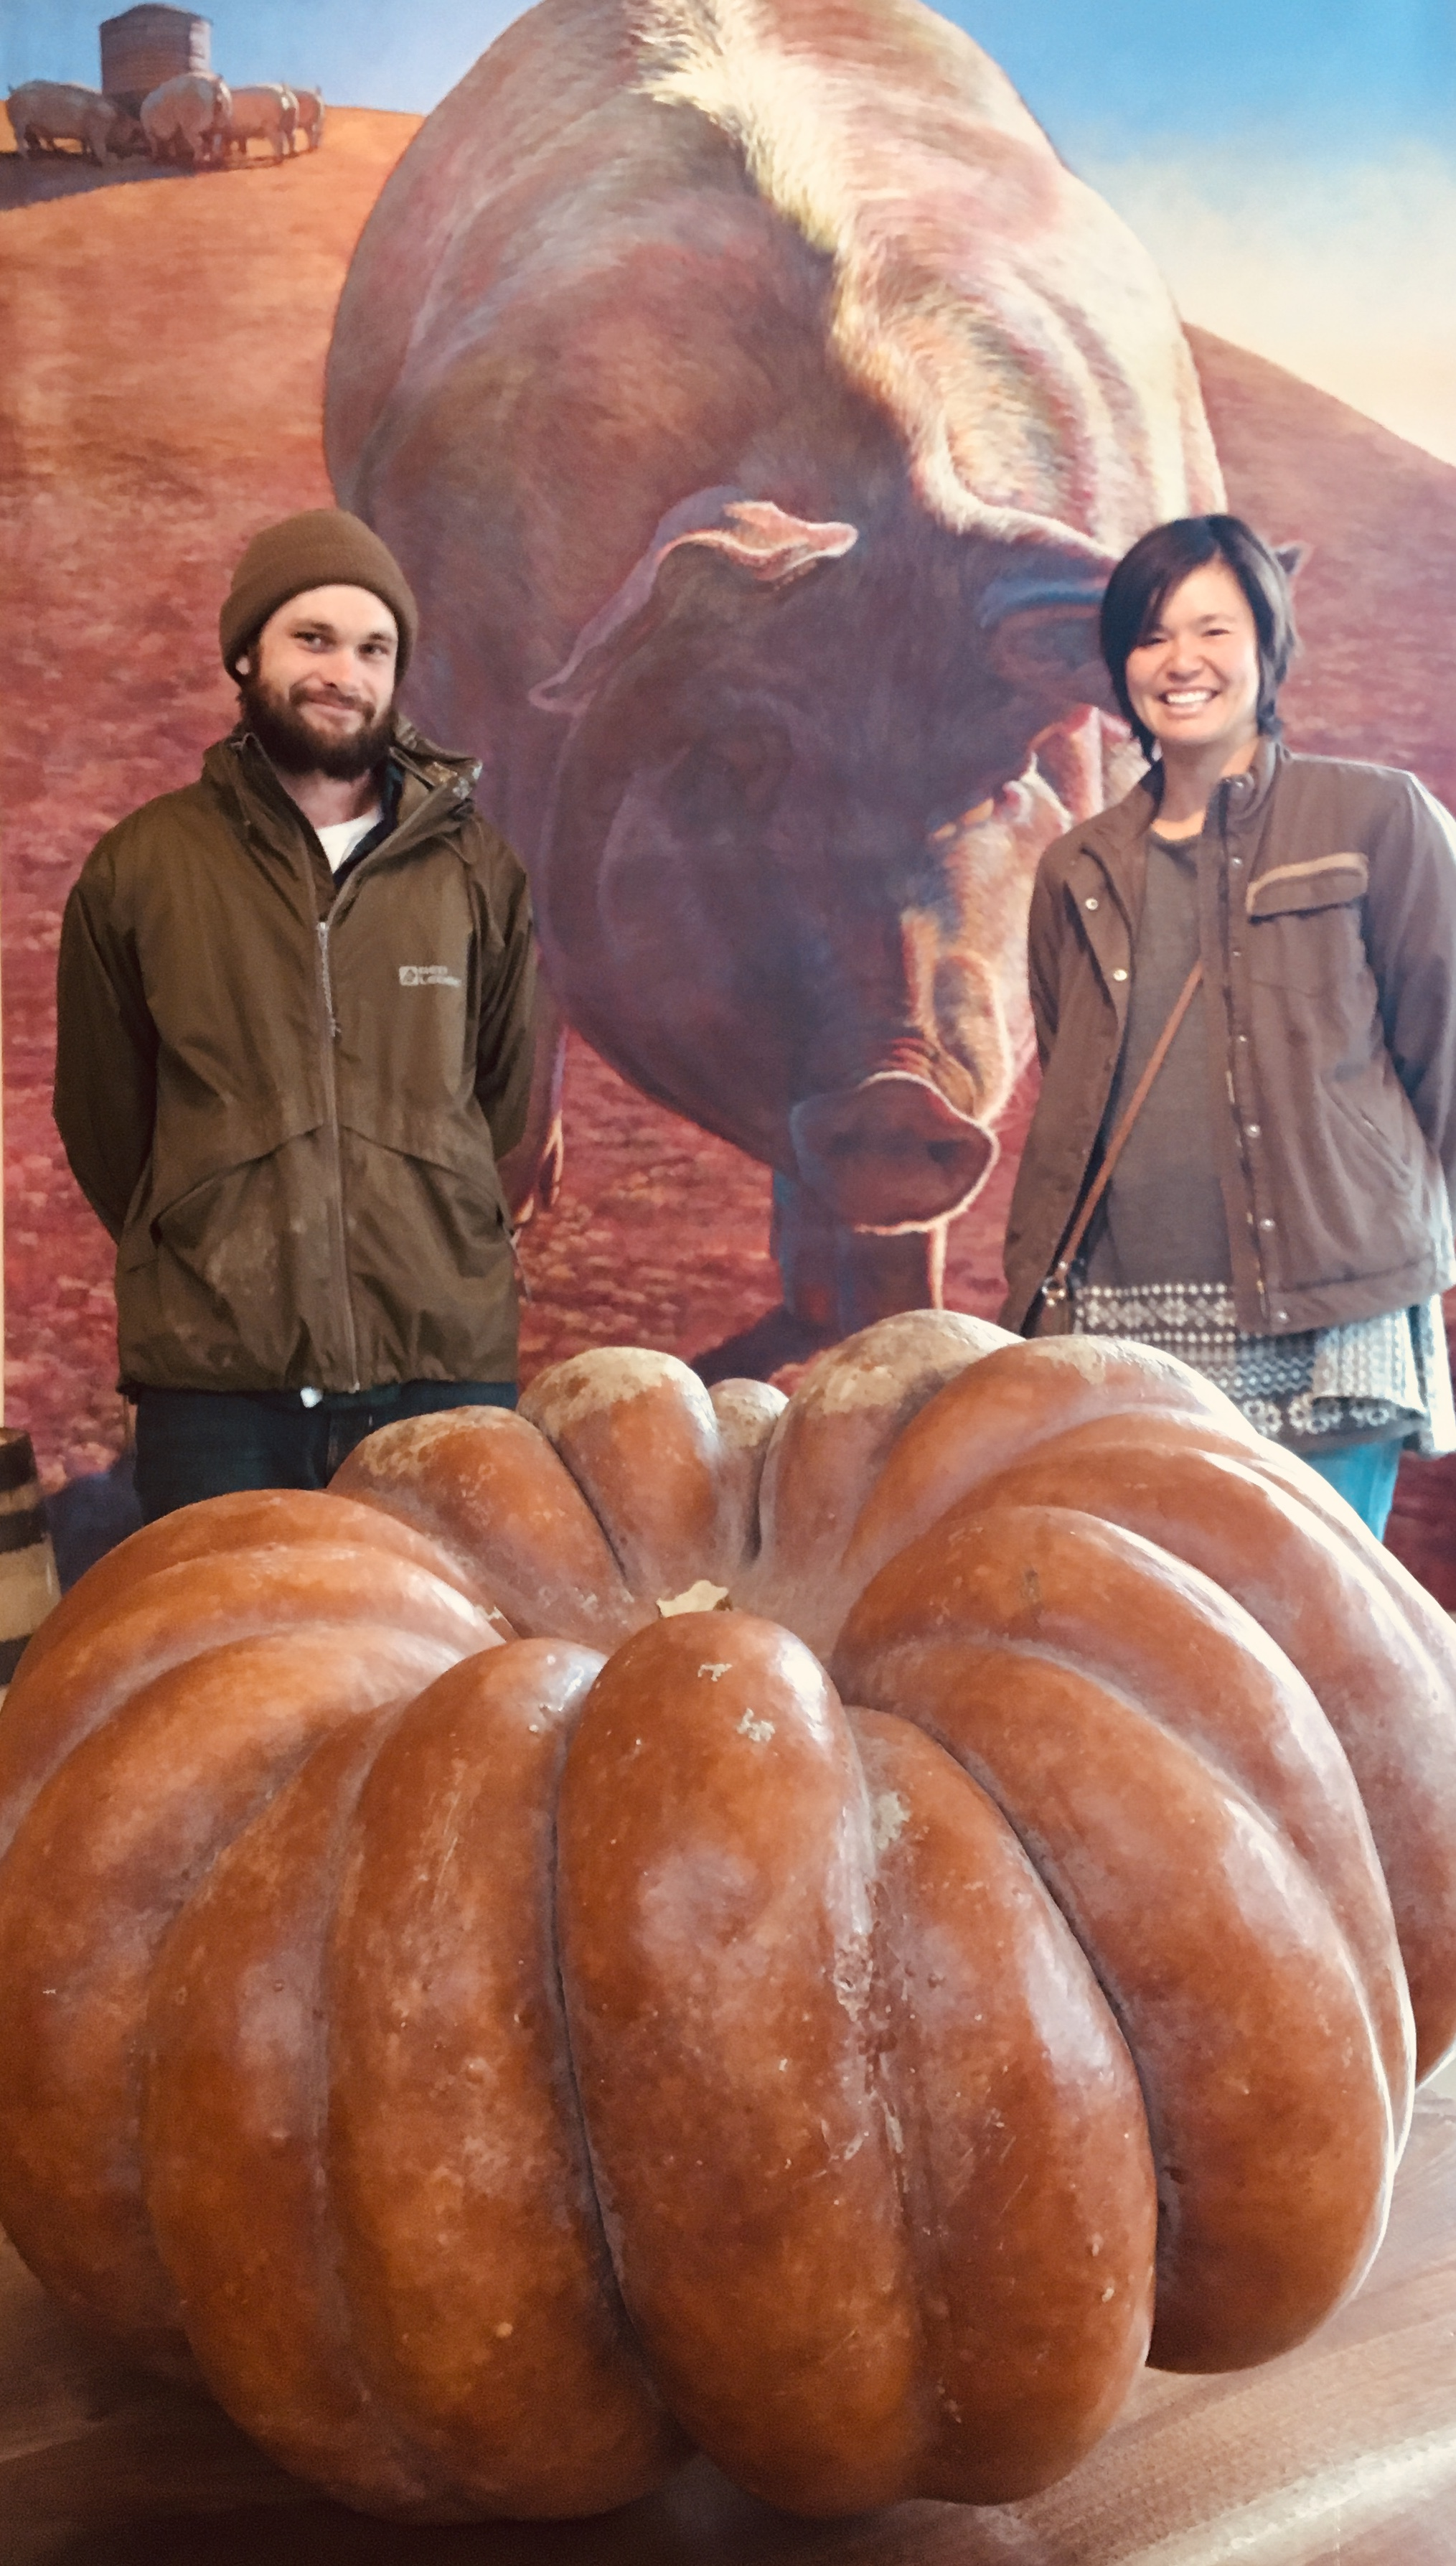 Above: Pat and Sarah from Squashington farm with their giant pumpkin that we cooked into pumpkin cobbler at Brix